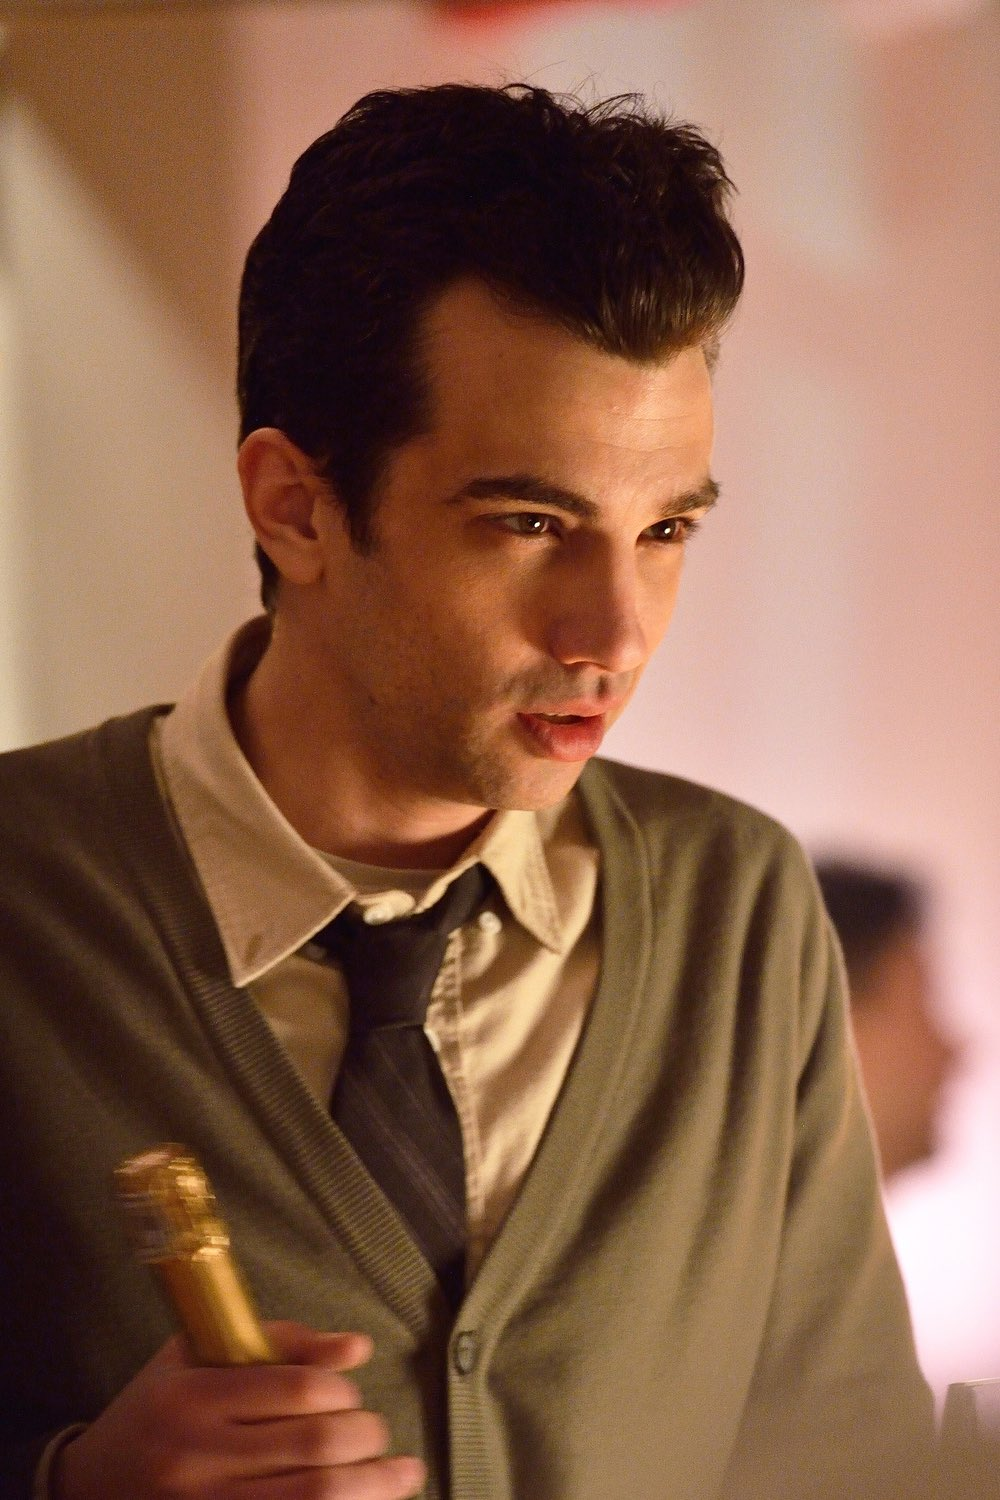 Man seeking women writers